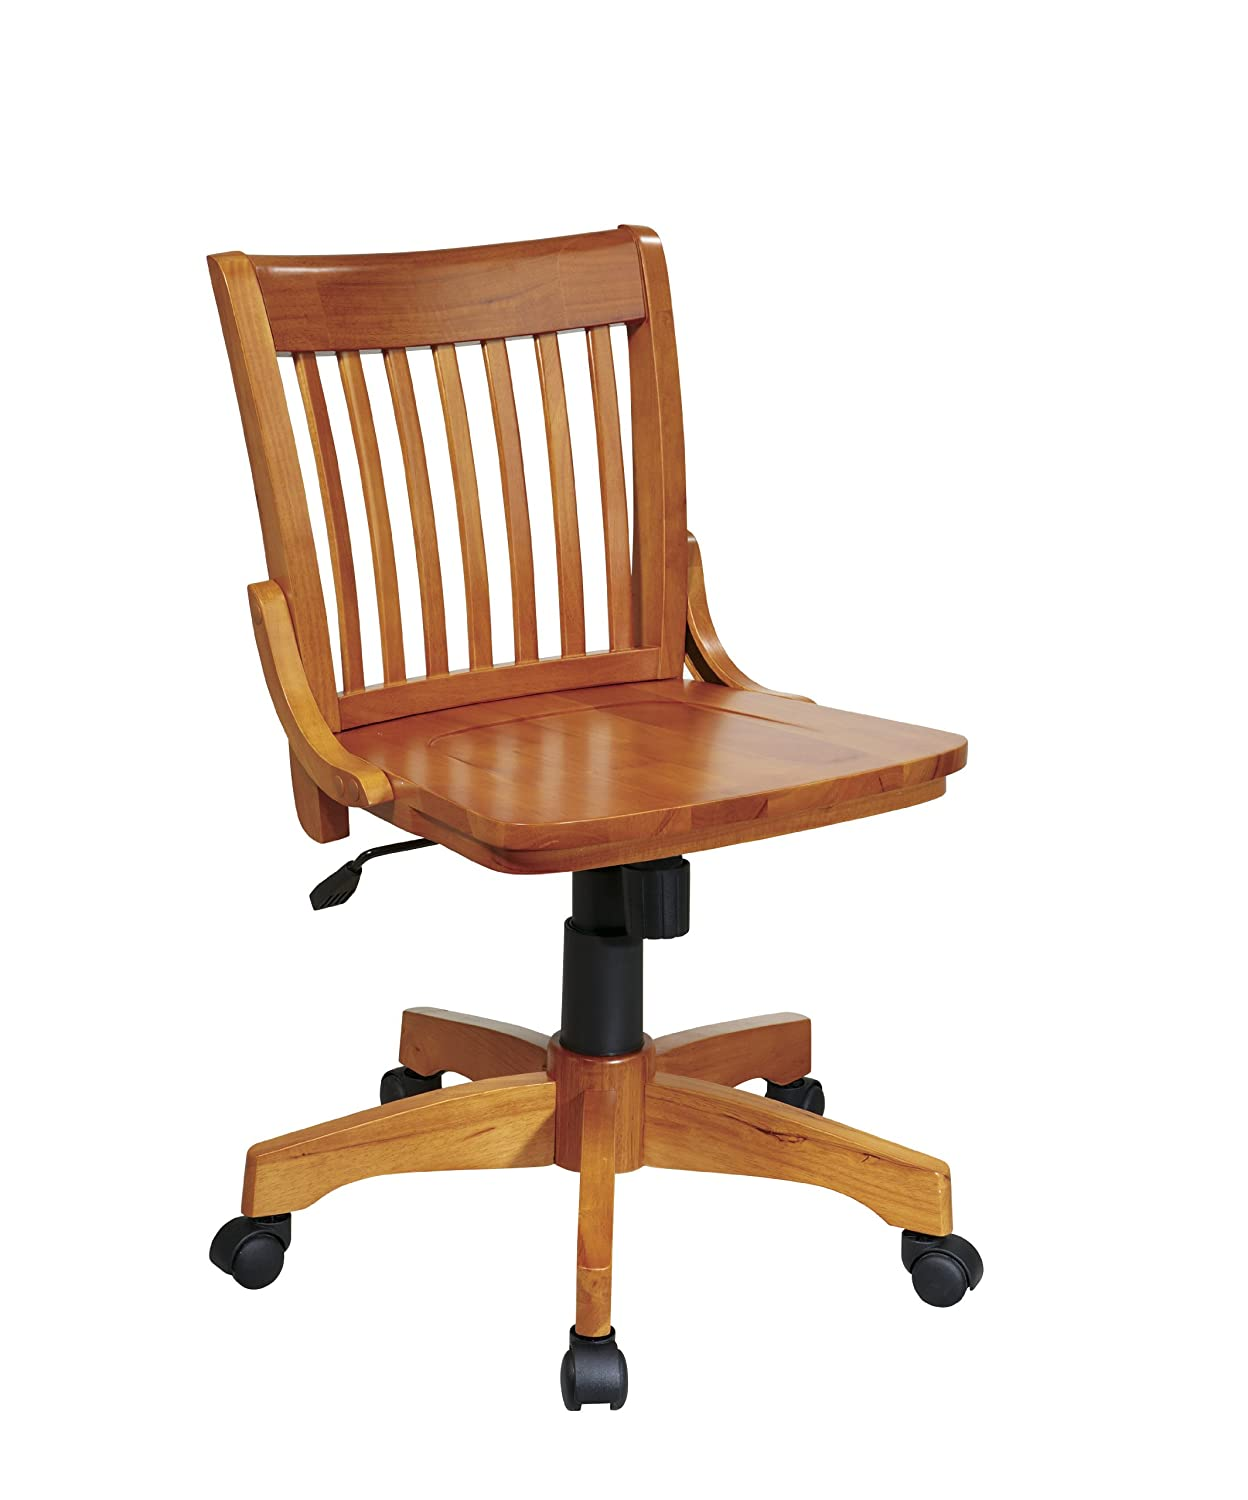 Armless Desk Chairs Deluxe Armless Wood Bankers Desk Chair With Wood Seat